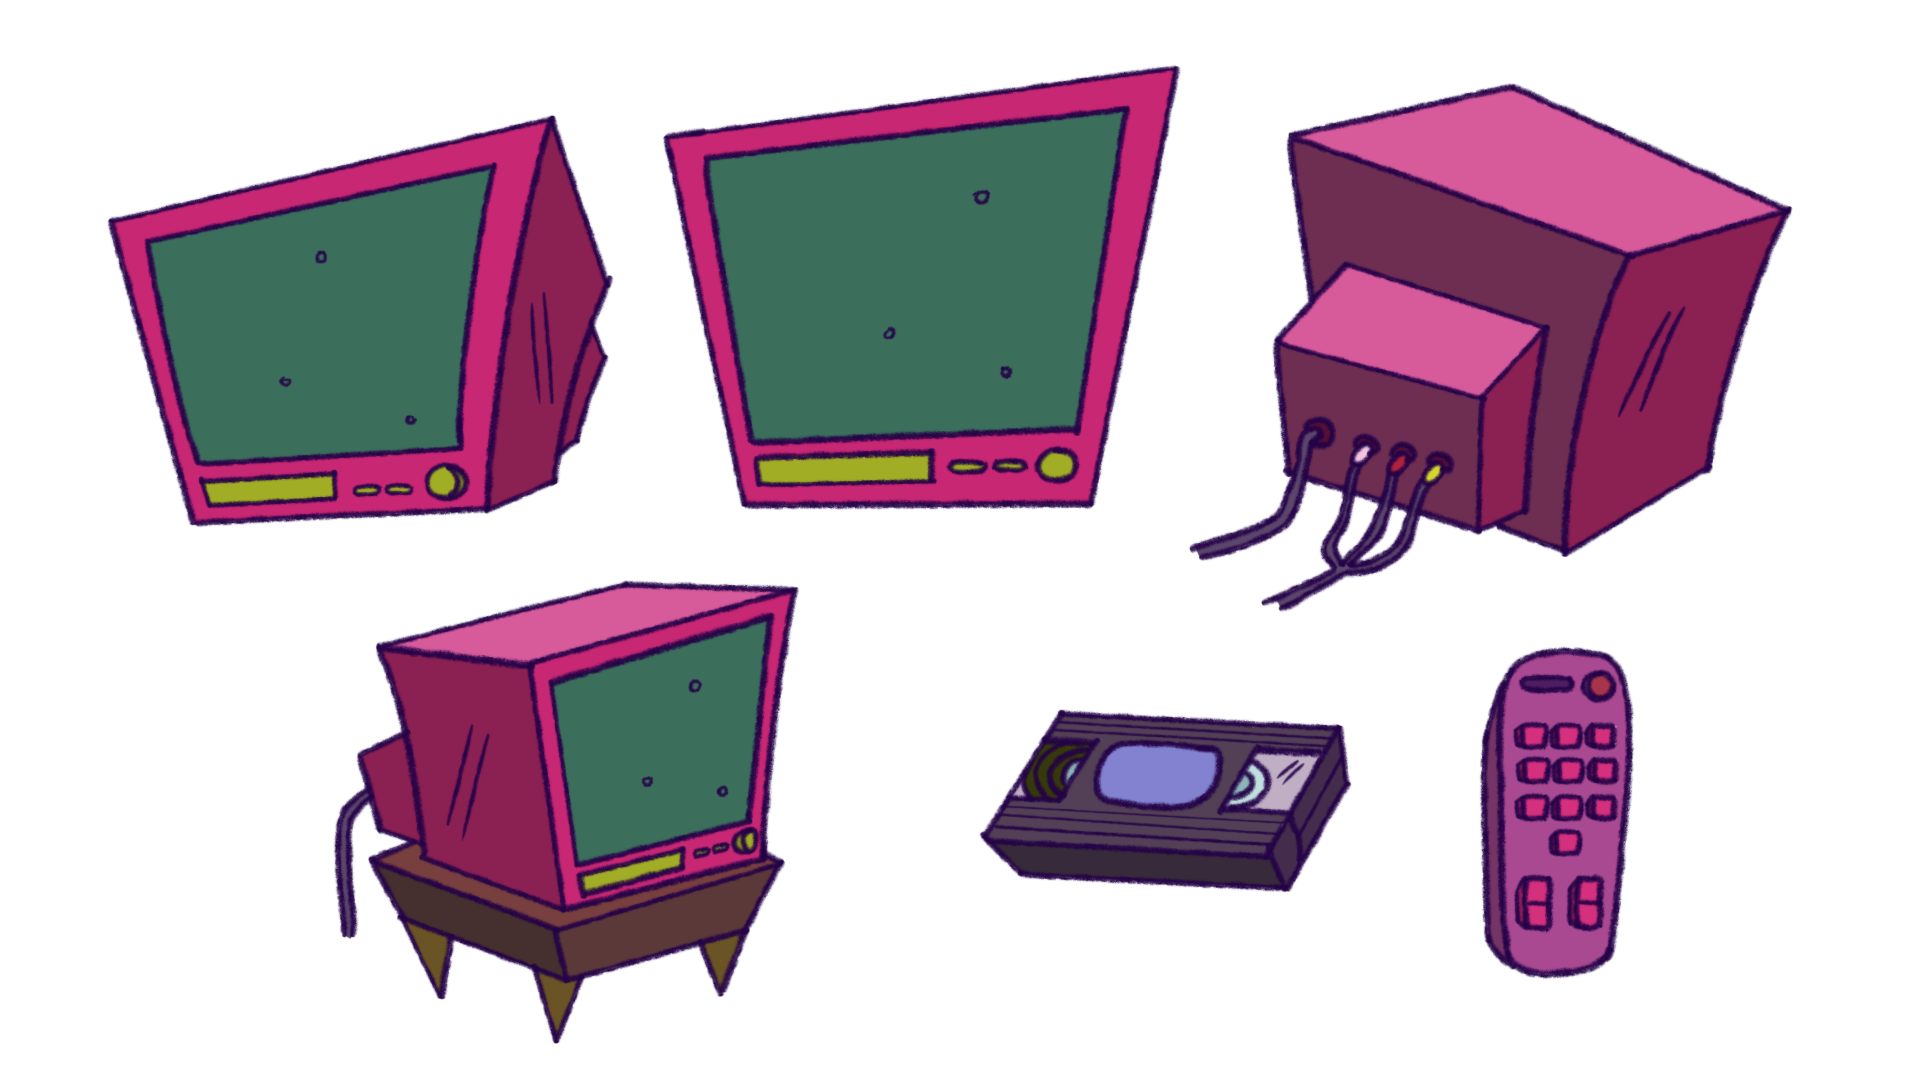 Prop Design - TV with videotape and remote